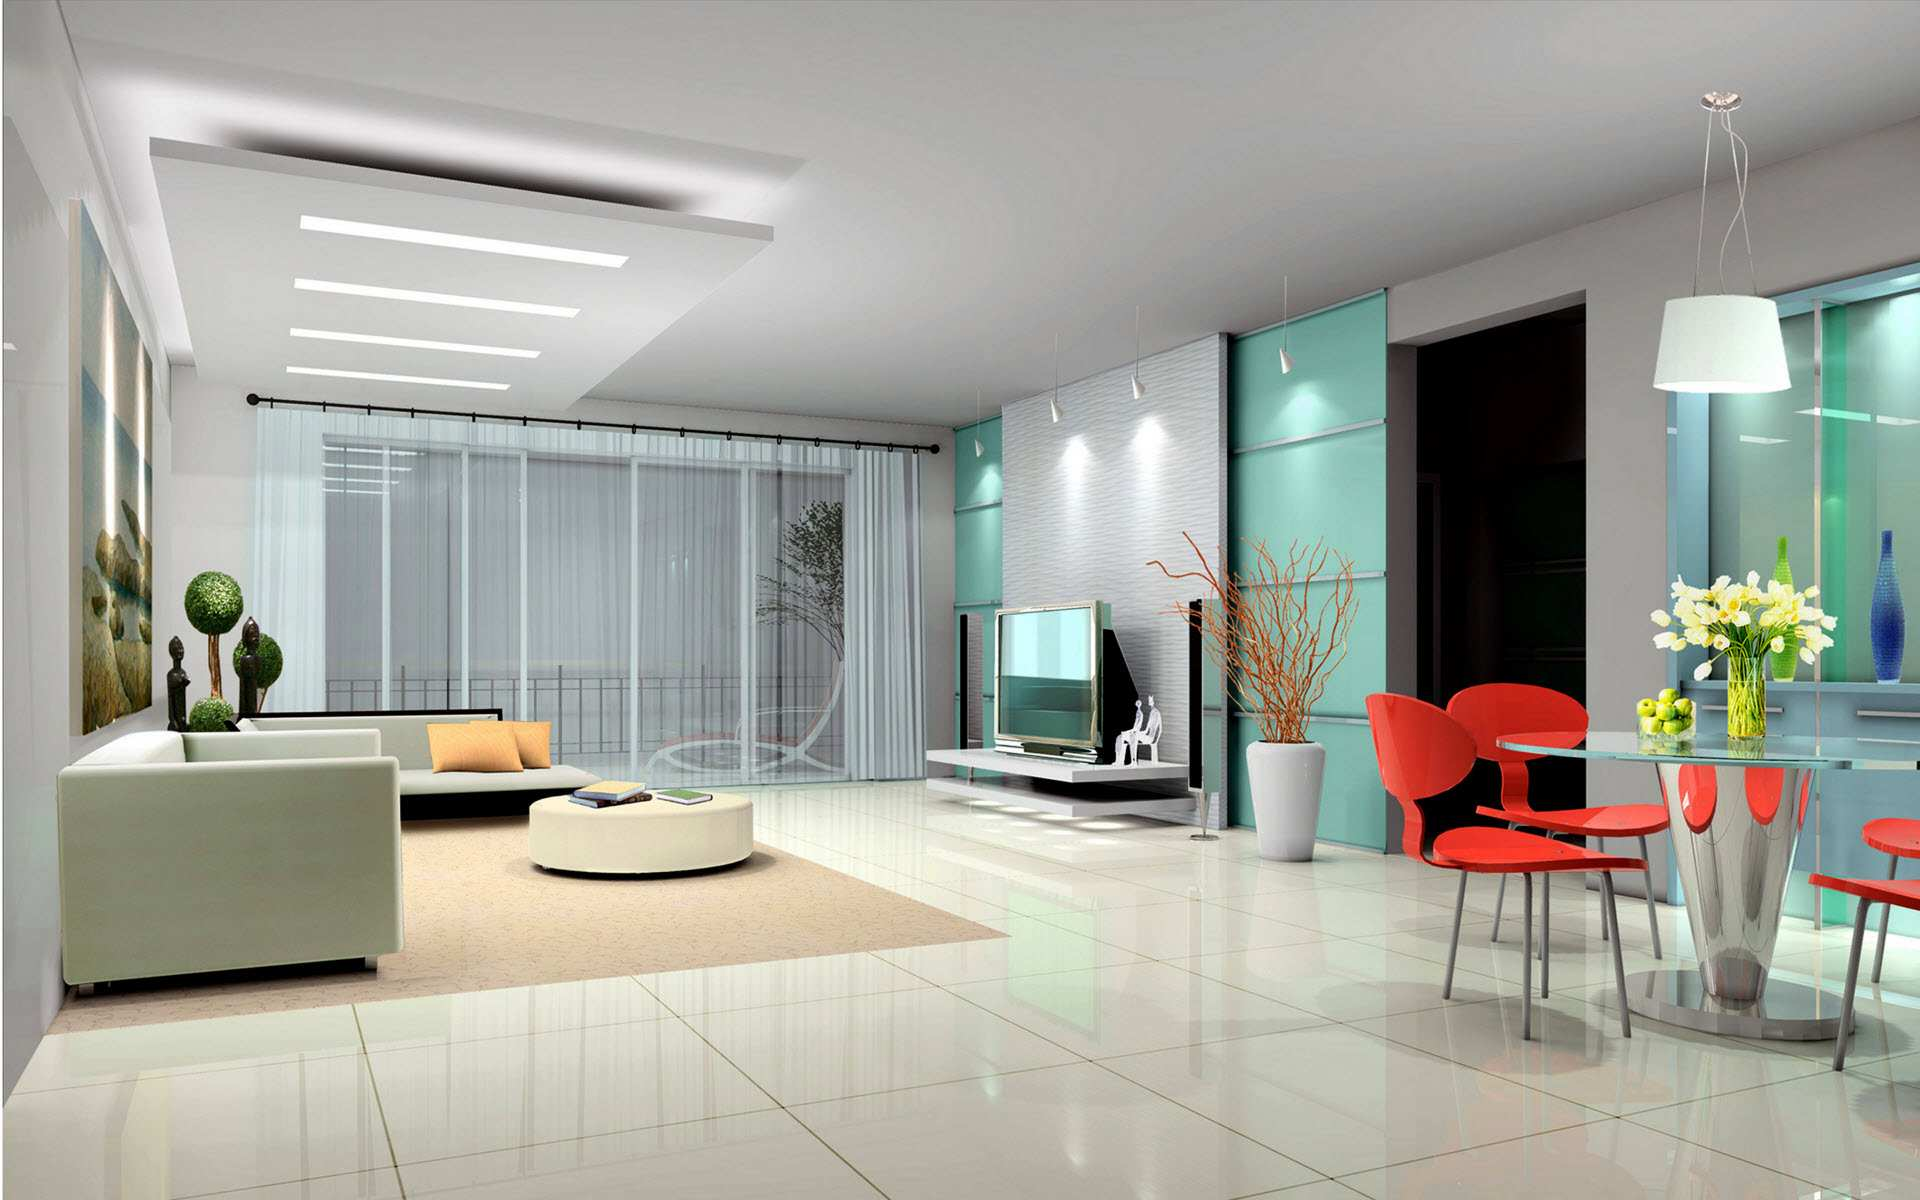 50 Best Interior Design For Your Home - The WoW Style on House Interior Ideas  id=69941